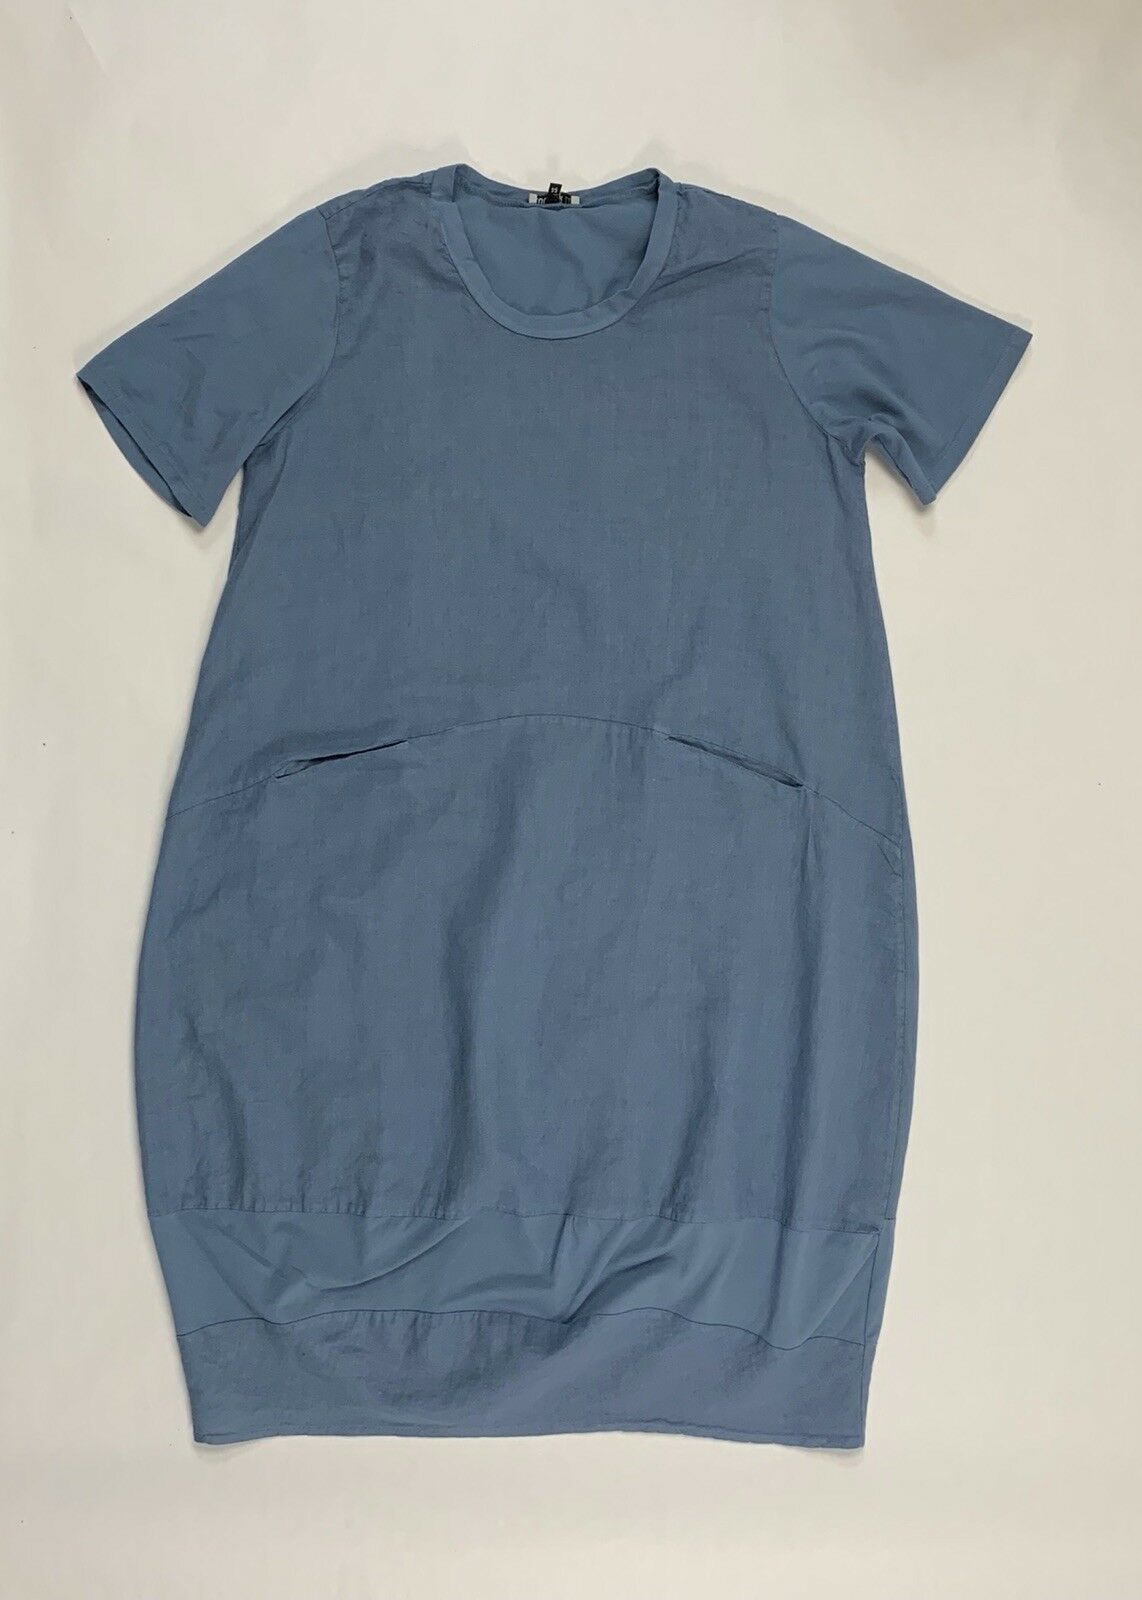 Lagenlook Linen Dress by Colour Lin,Euro Size 54 Made in  (Fits like 18-20)